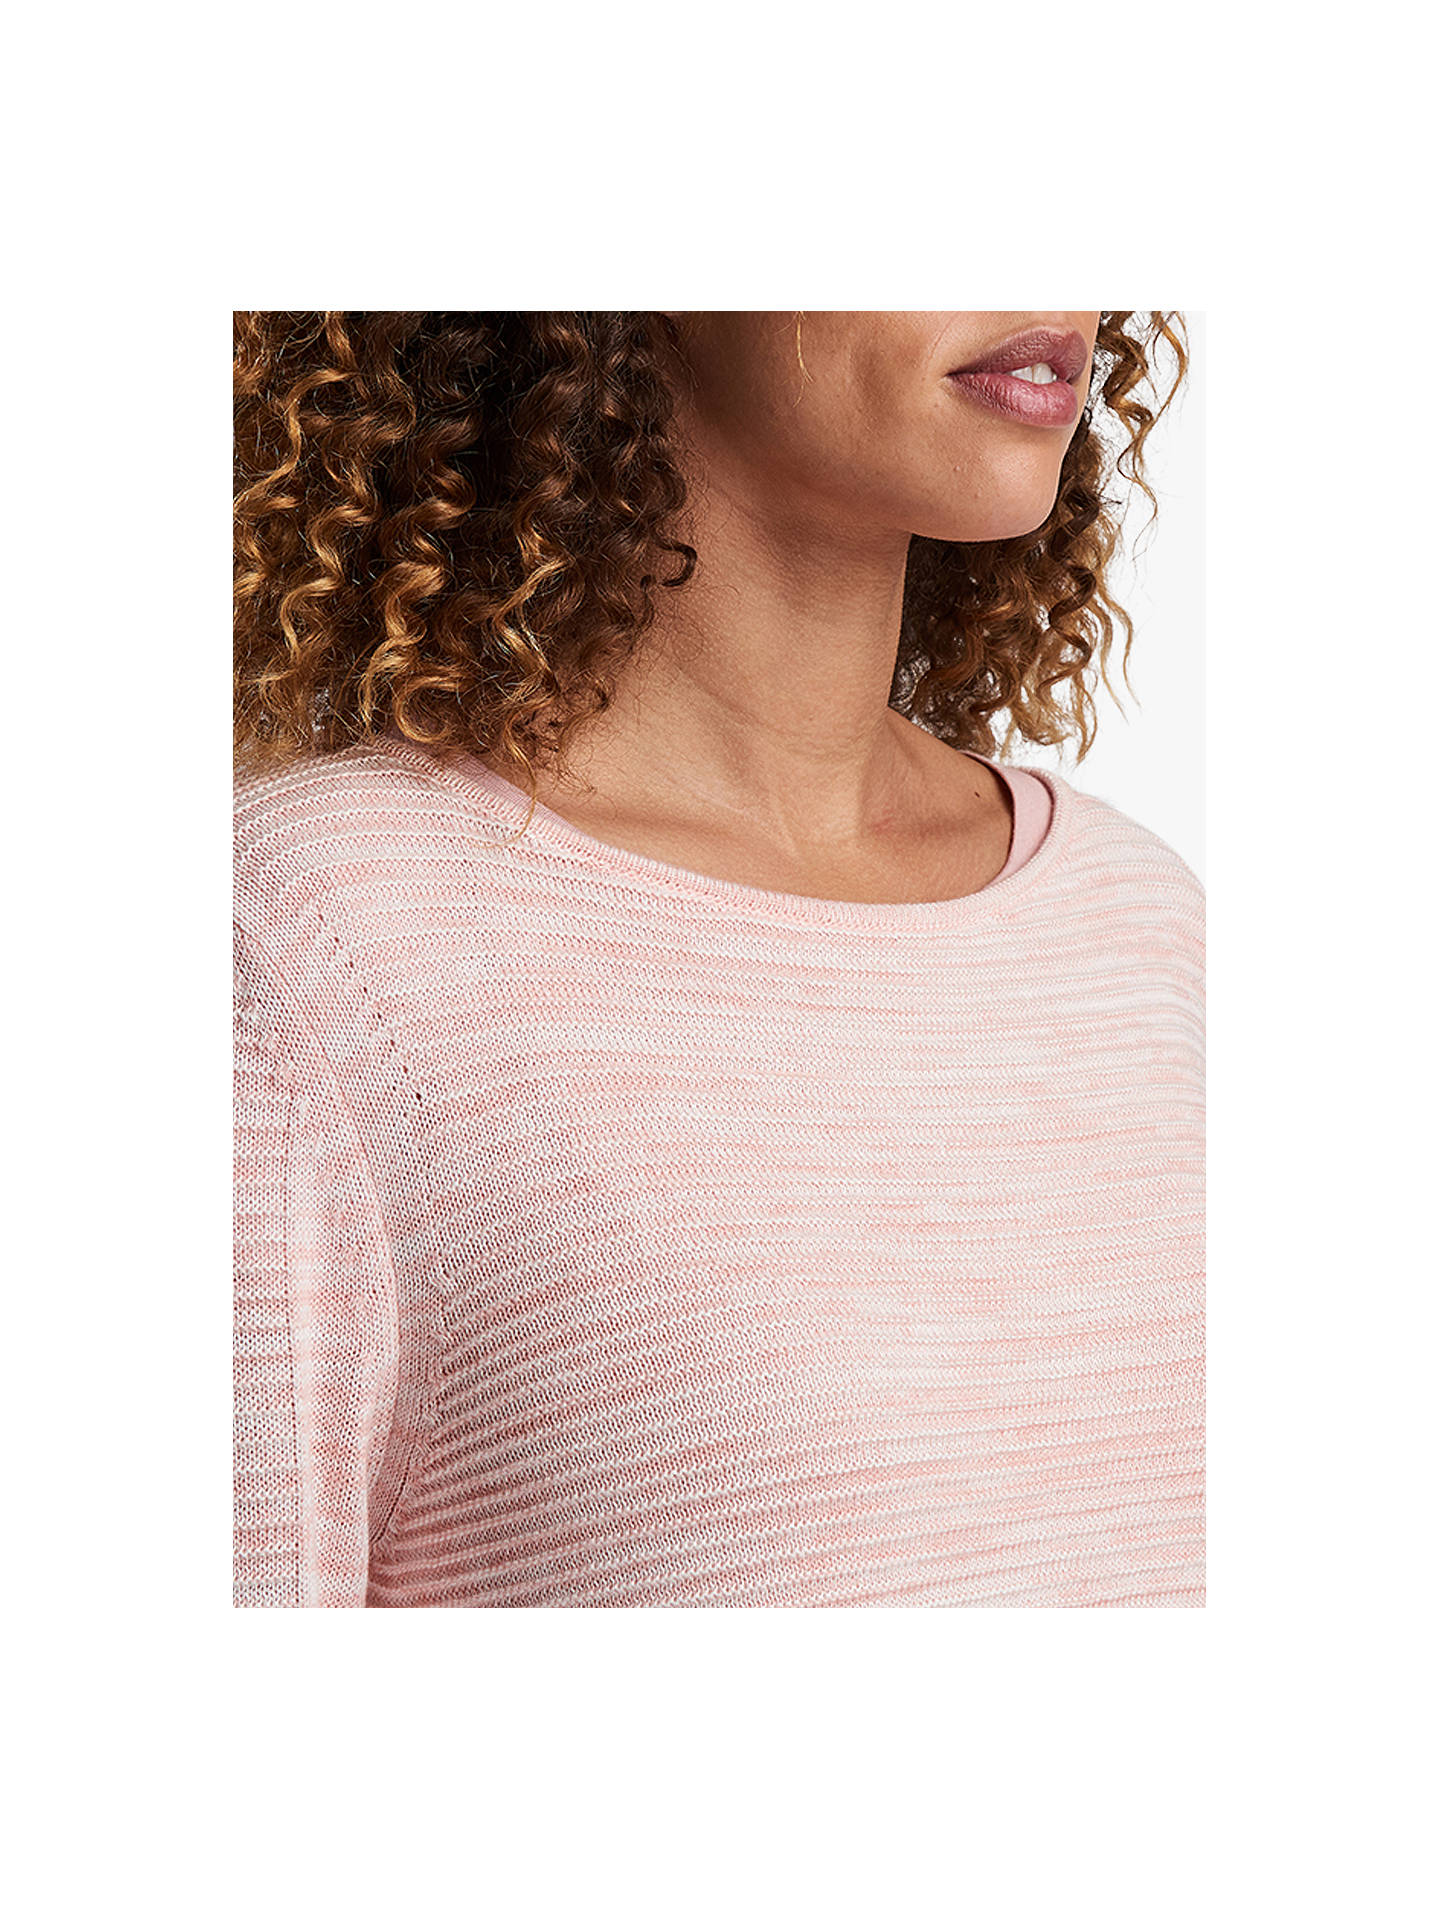 BuyBarbour International Hartle Knitted Sweatshirt, Rose/White, 14 Online at johnlewis.com